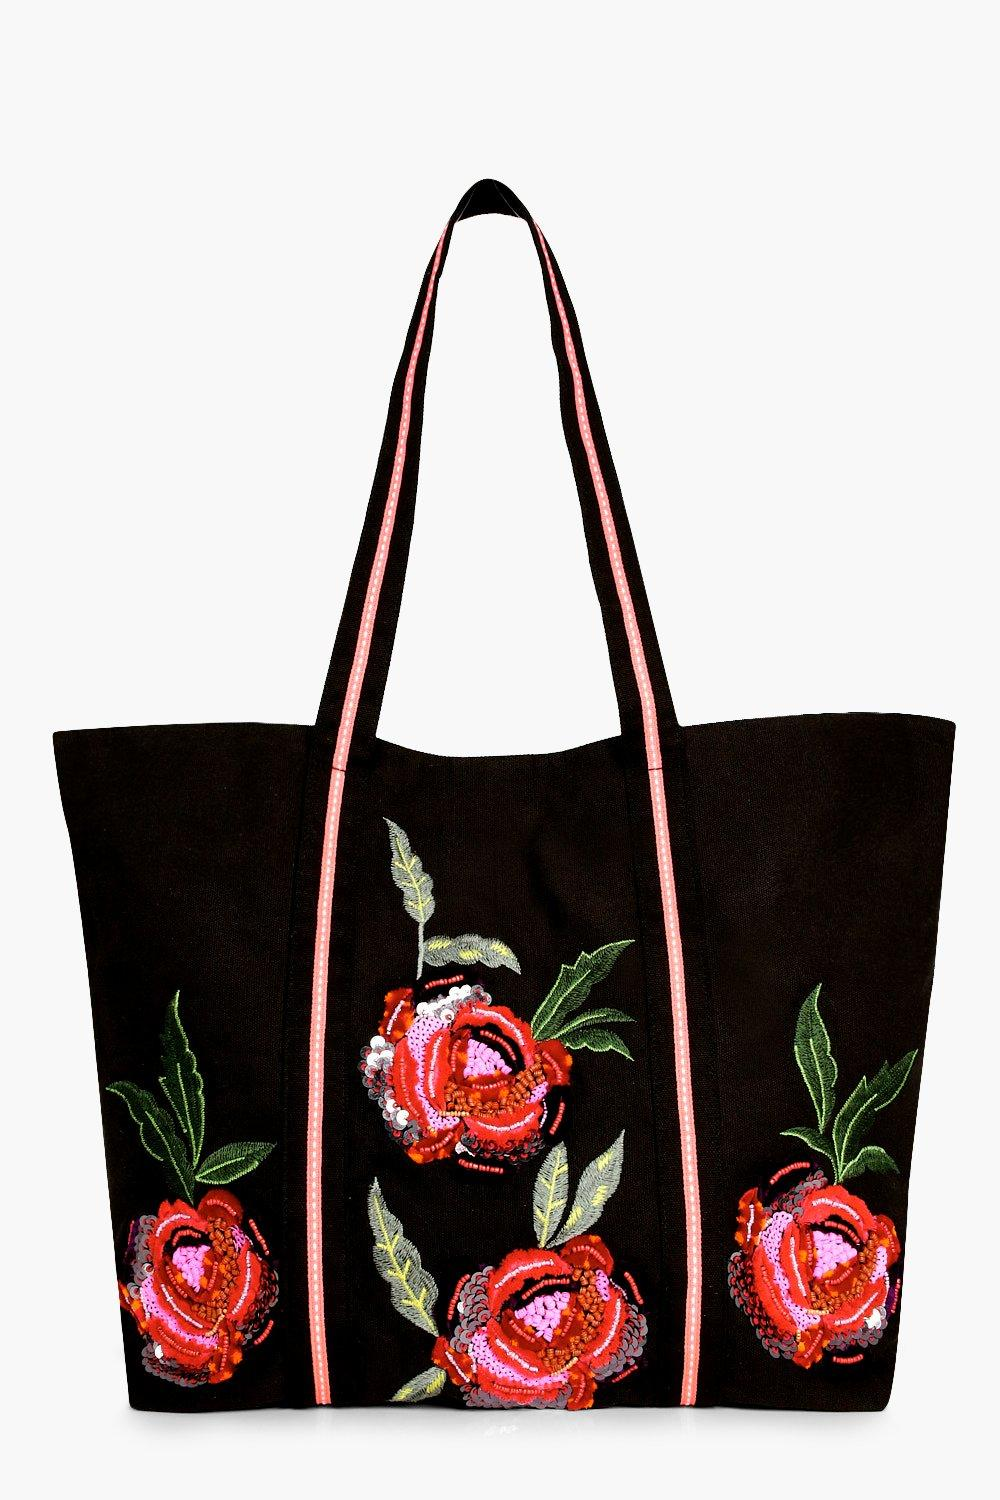 Floral Embroidered Shopper Bag - black - Mia Flora